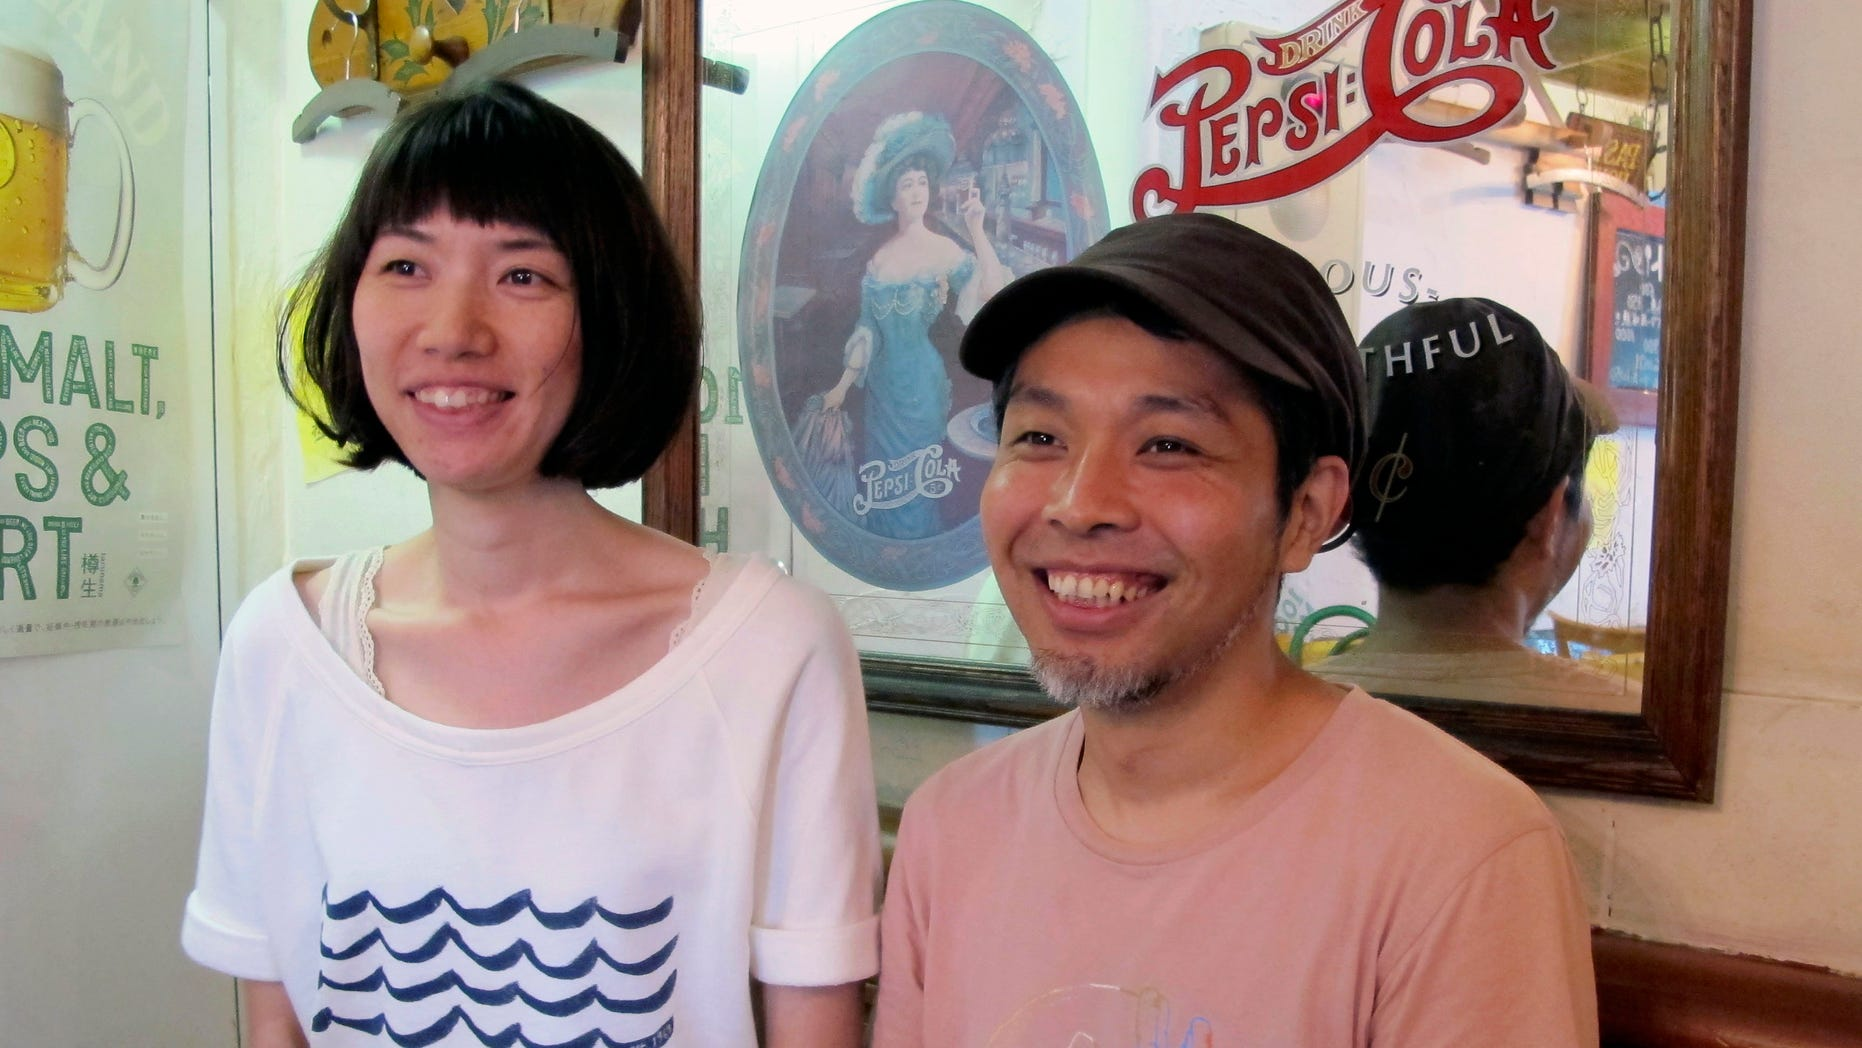 In this Friday, July 12, 2013, photo, Teruyuki Kawabata, right, 36, and his wife Haruna, 32, smile during an interview in Tokyo. Both Teruyuki and Haruna were children when Japan's bubble economy burst more than two decades ago. Now, they have little interest in the stock market.  (AP Photo/Yuri Kageyama)